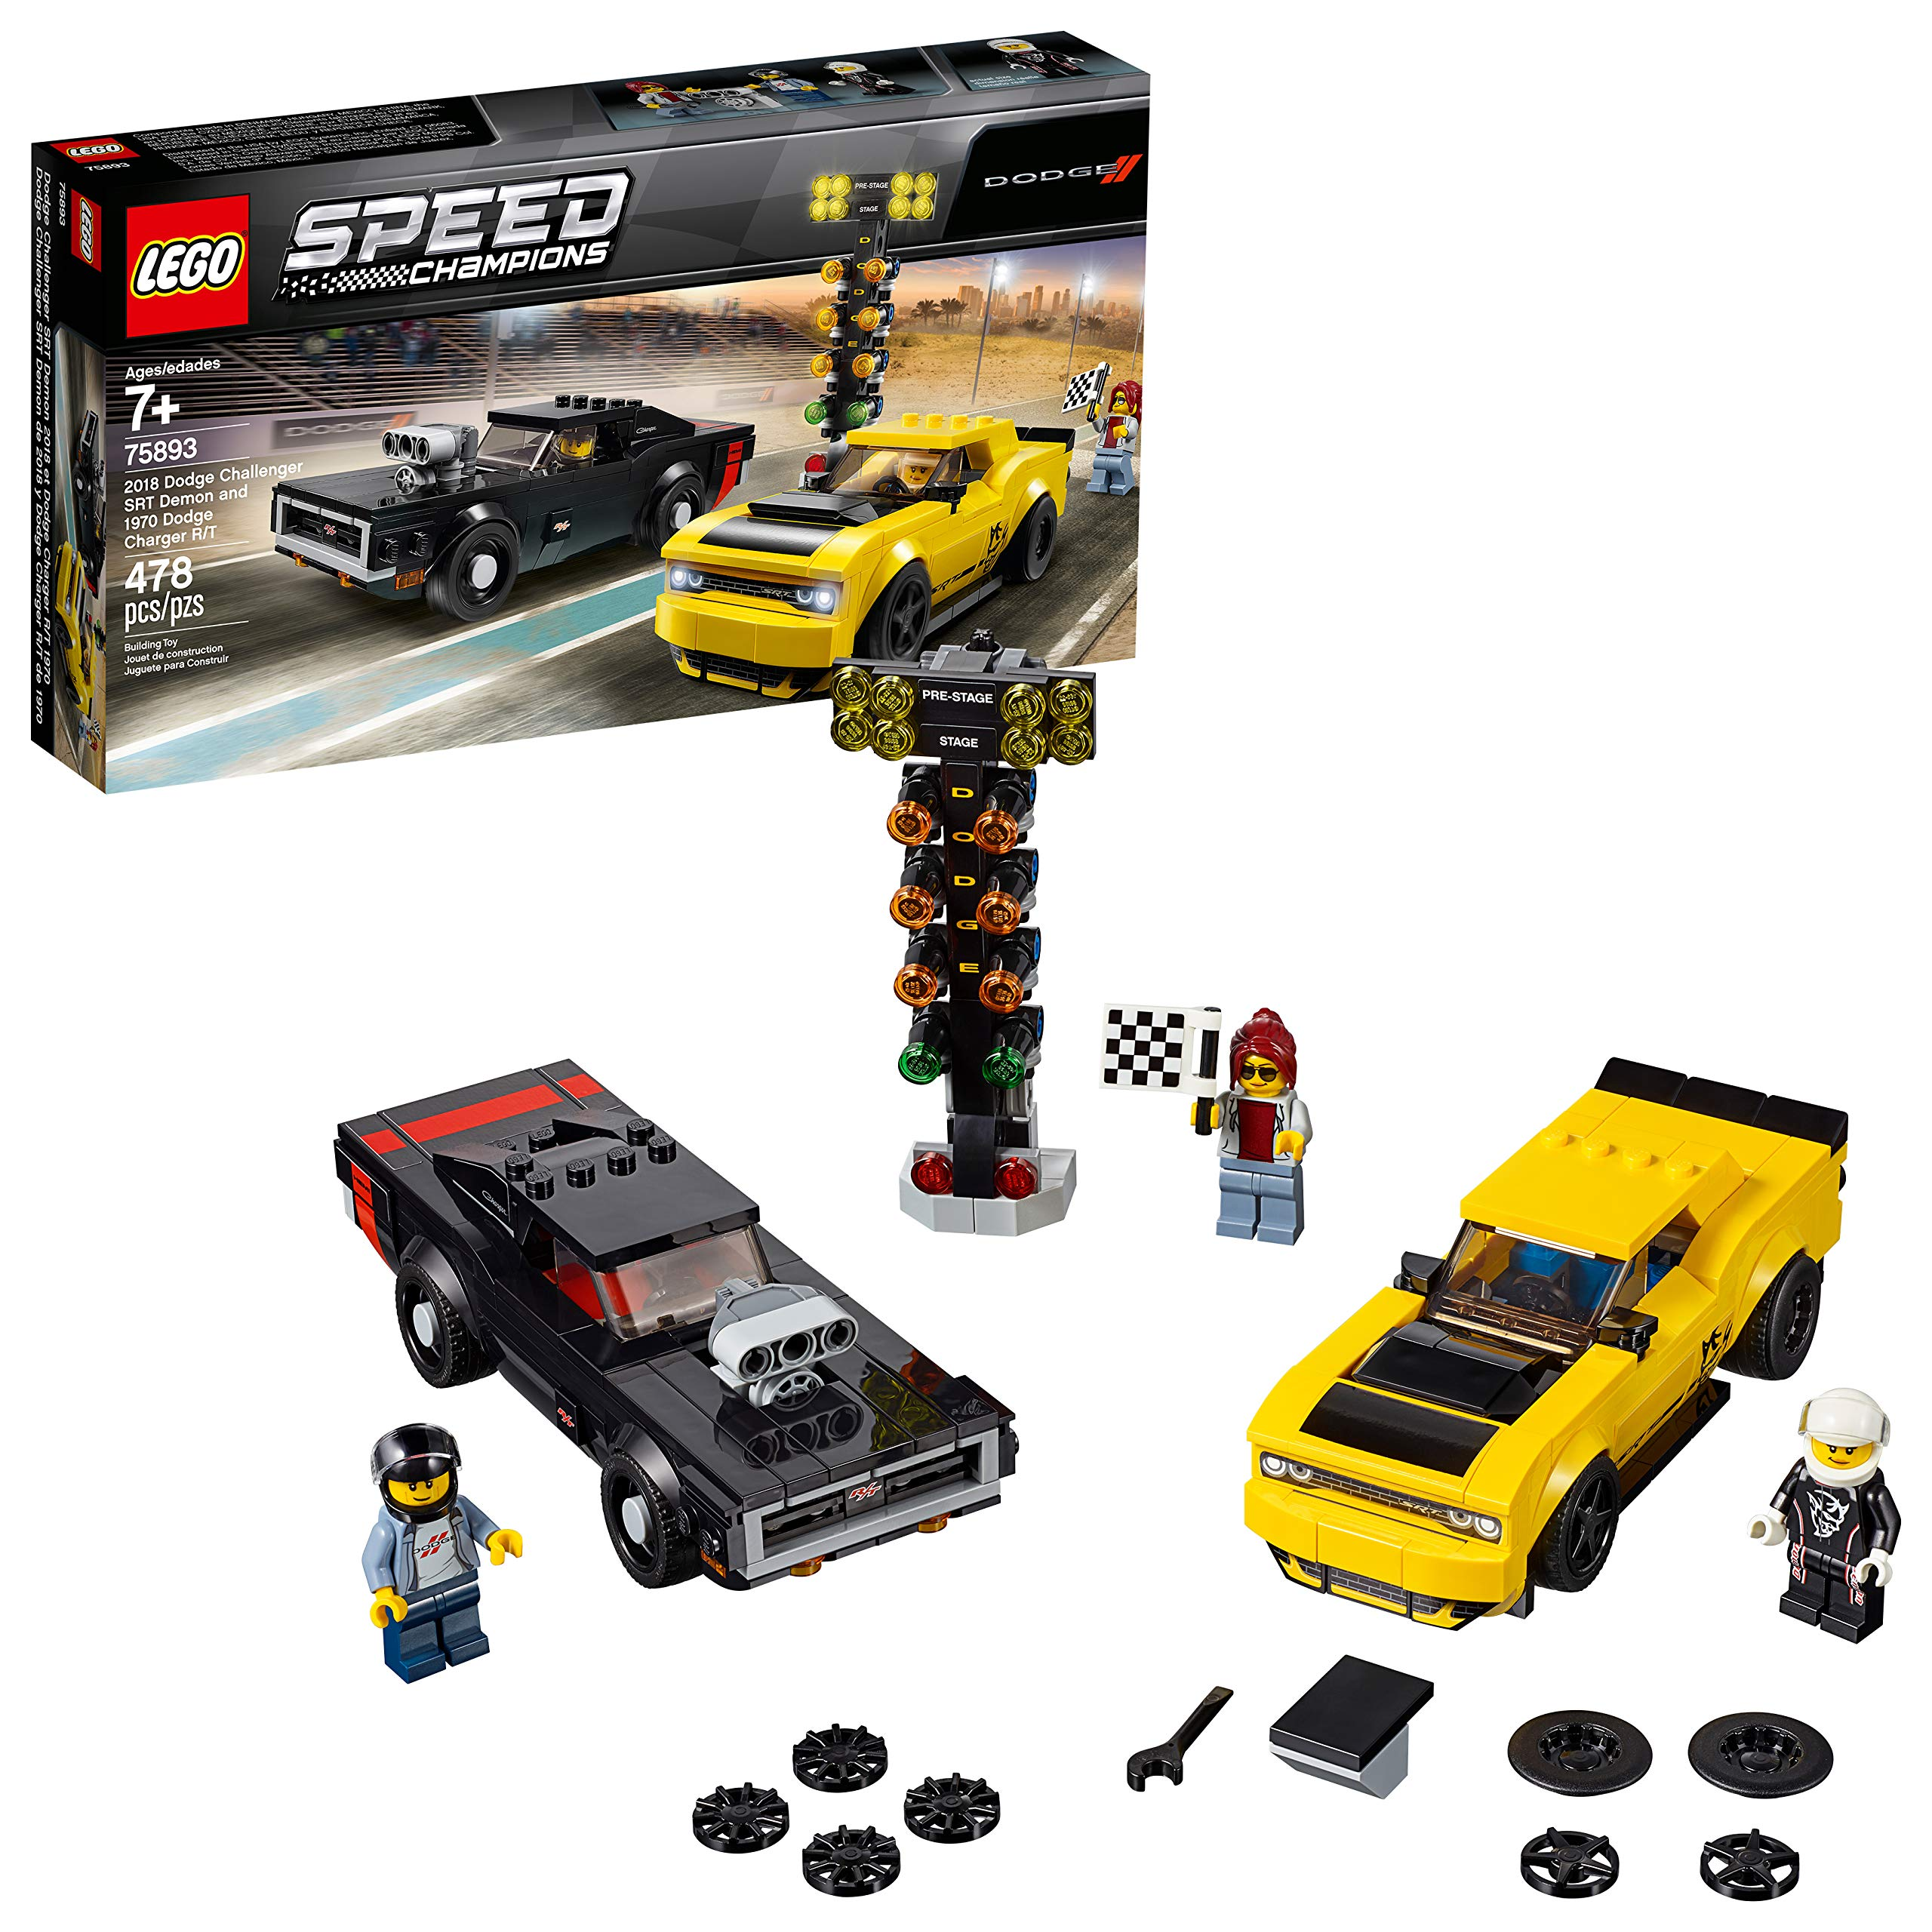 LEGO Champions Challenger Charger Building